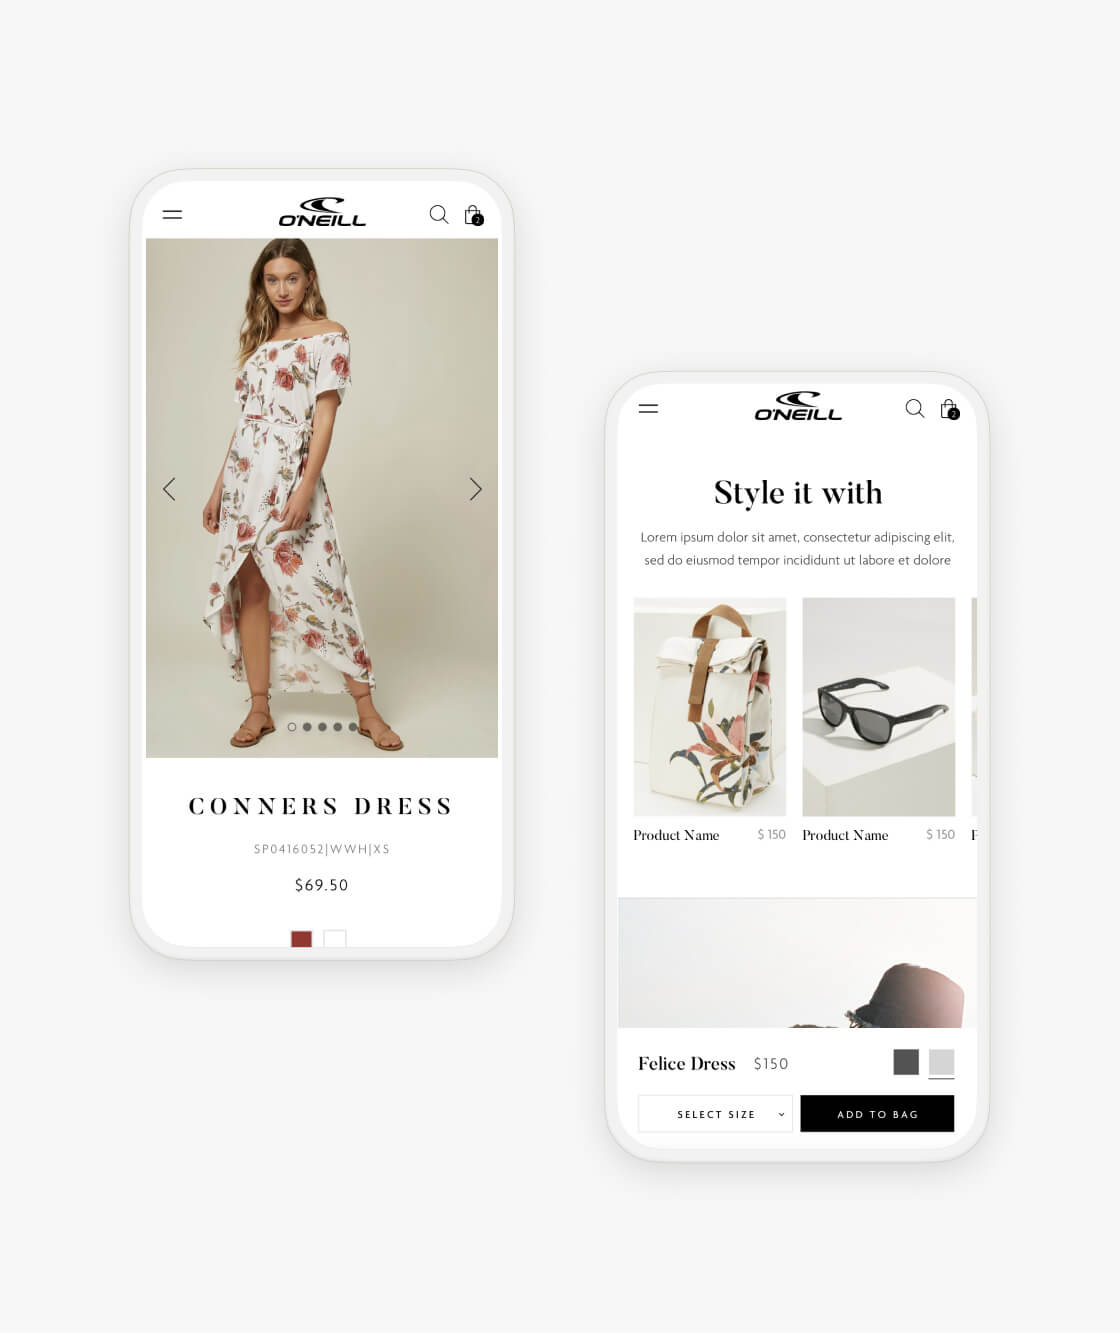 oneill shopify product pages on two mobile phones